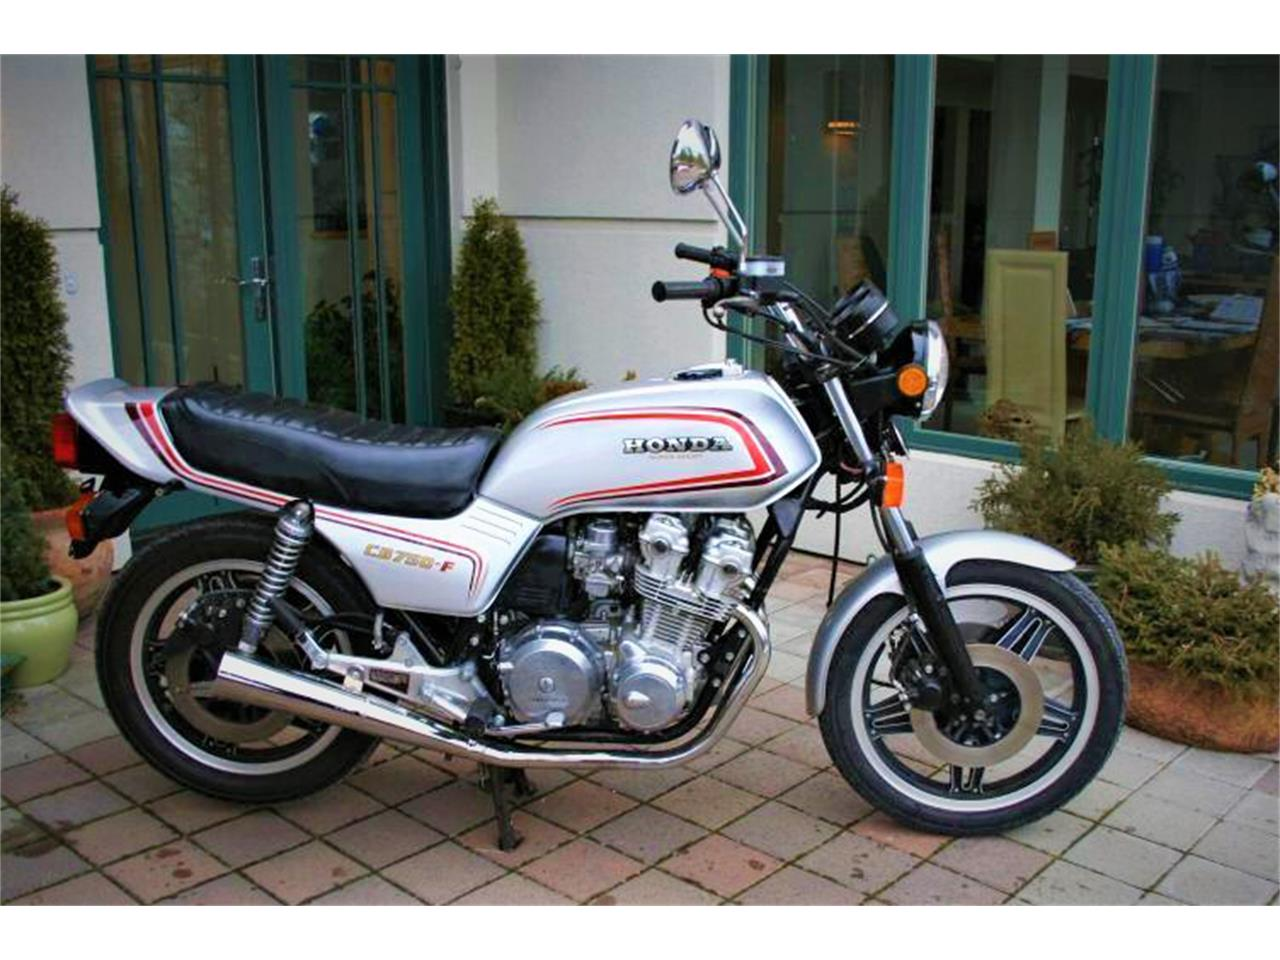 1980 honda motorcycle pictures  1980 Honda Motorcycle for Sale | ClassicCars.com | CC-1048700